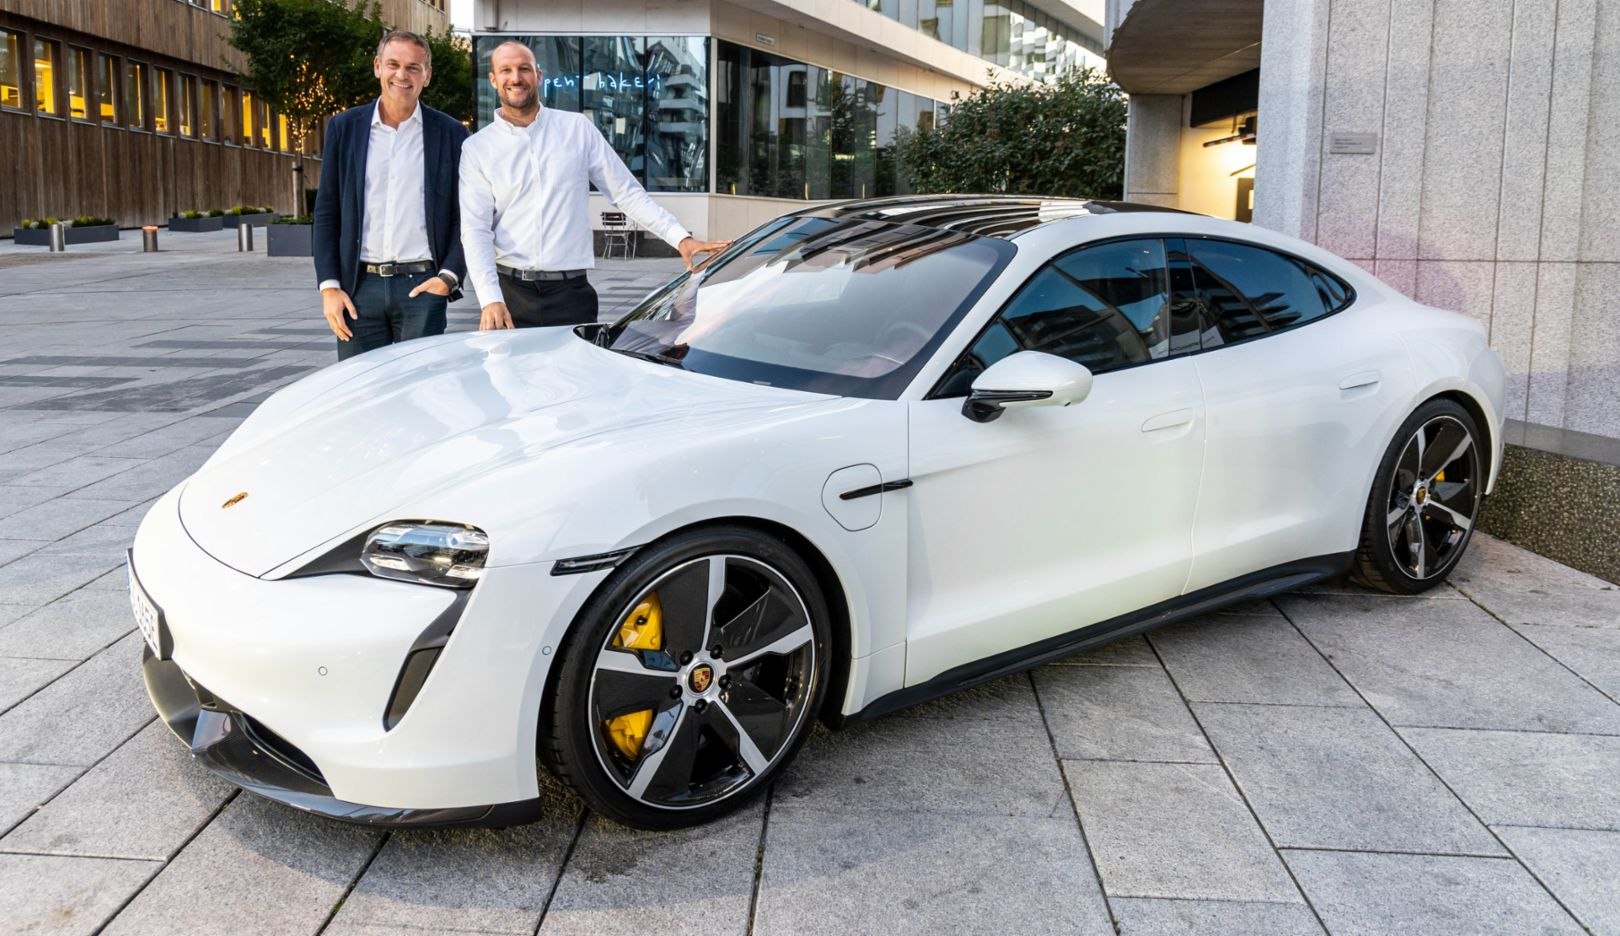 Oliver Blume, Chairman of the Executive Board of Porsche AG, Aksel Lund Svindal, Porsche Brand Ambassador, 2019, Porsche AG